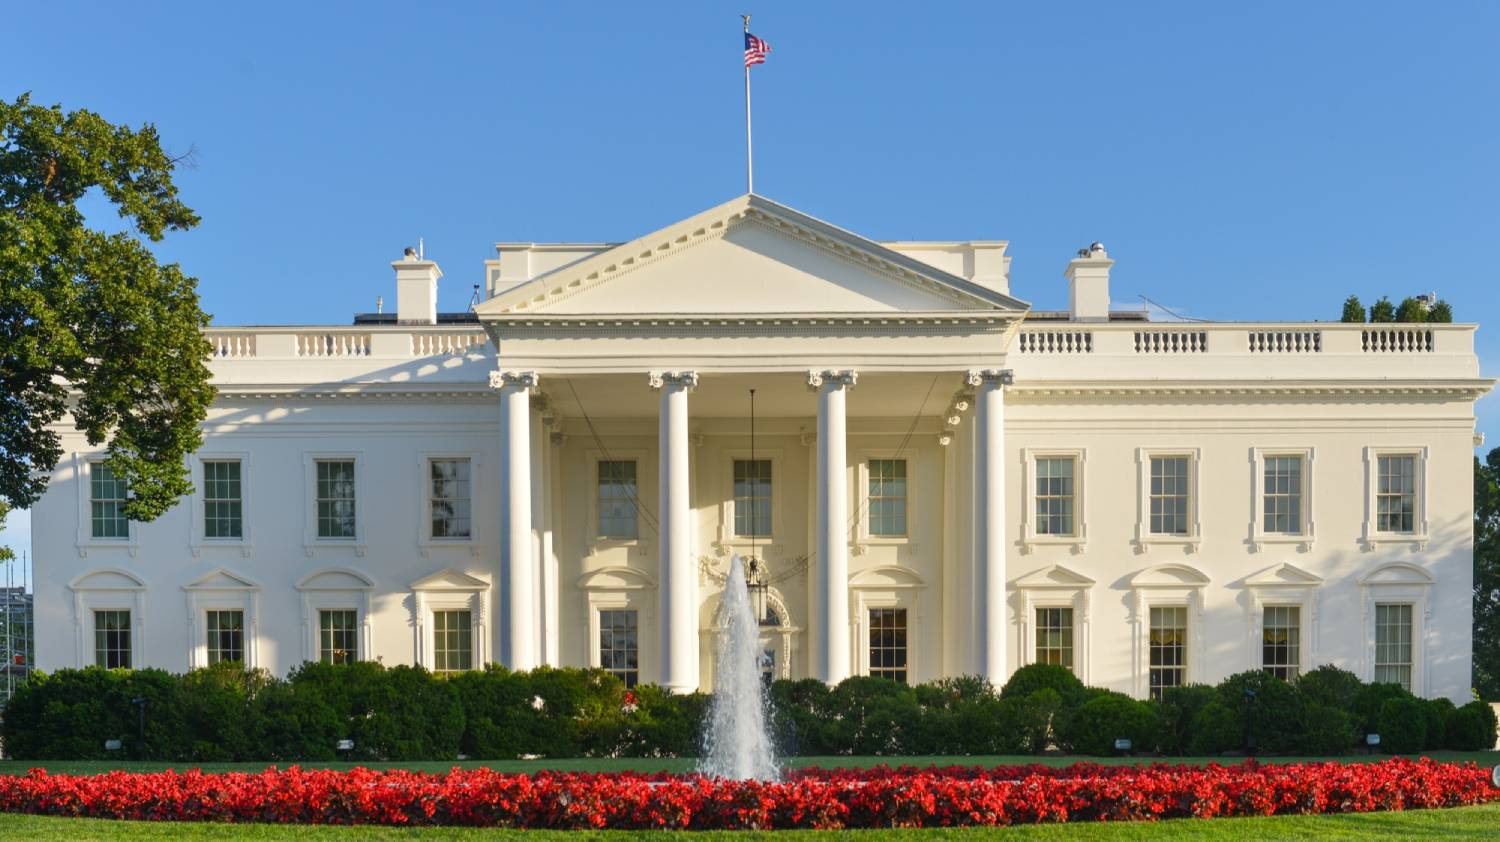 The White House - Things To Do In Washington, D.C.